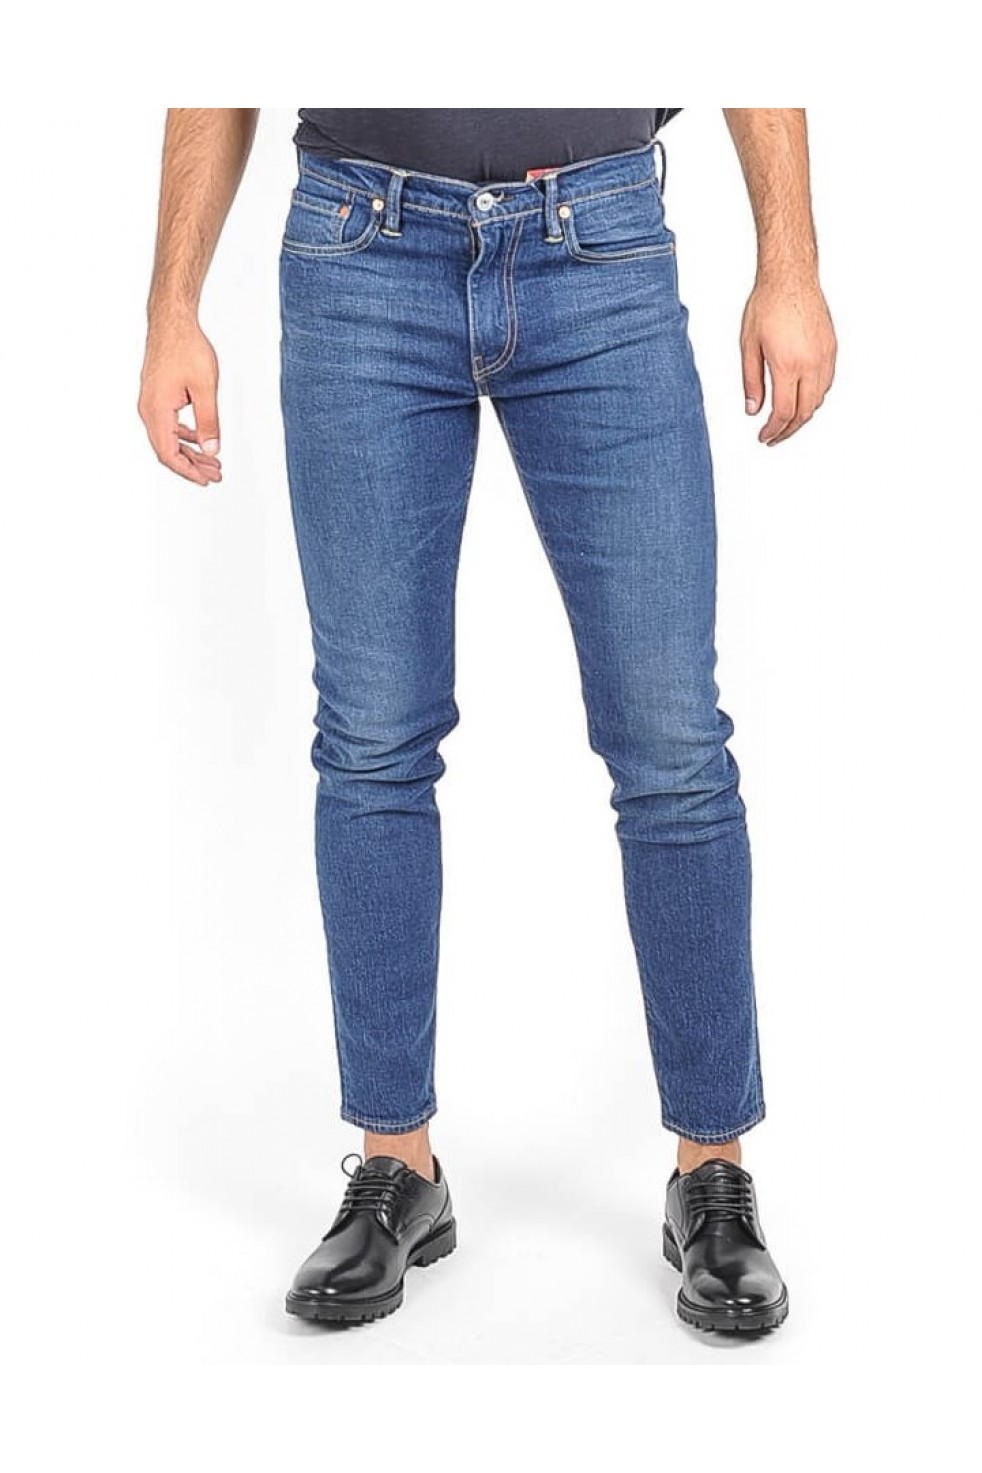 Levis-Erkek-Jean-Pantolon-512-Slim-Taper-Fit-28833-0036